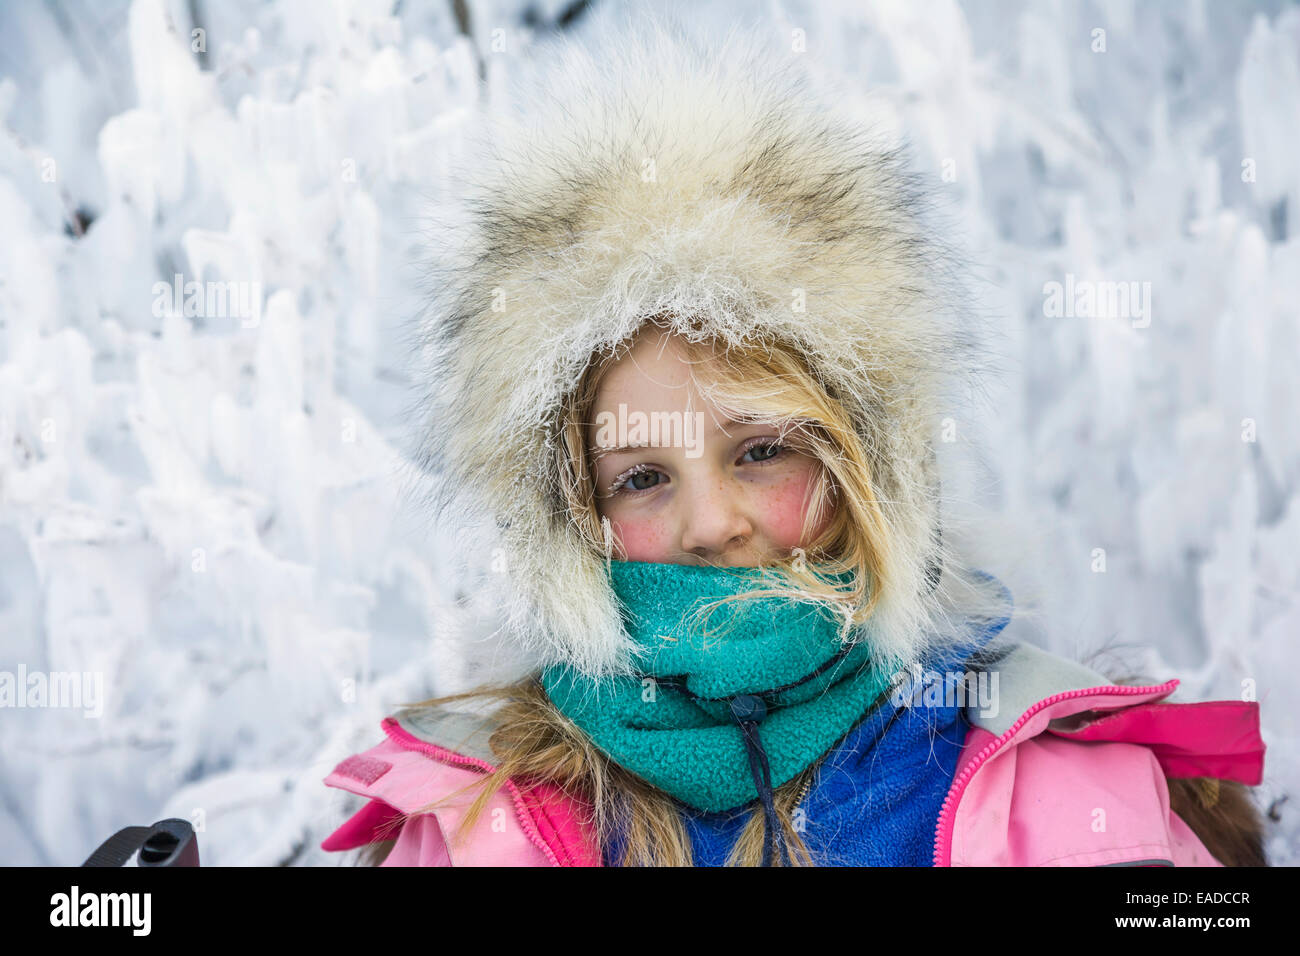 Young girl dressed in warm winter clothing by frost covered branches, Wiseman, Alaska - Stock Image